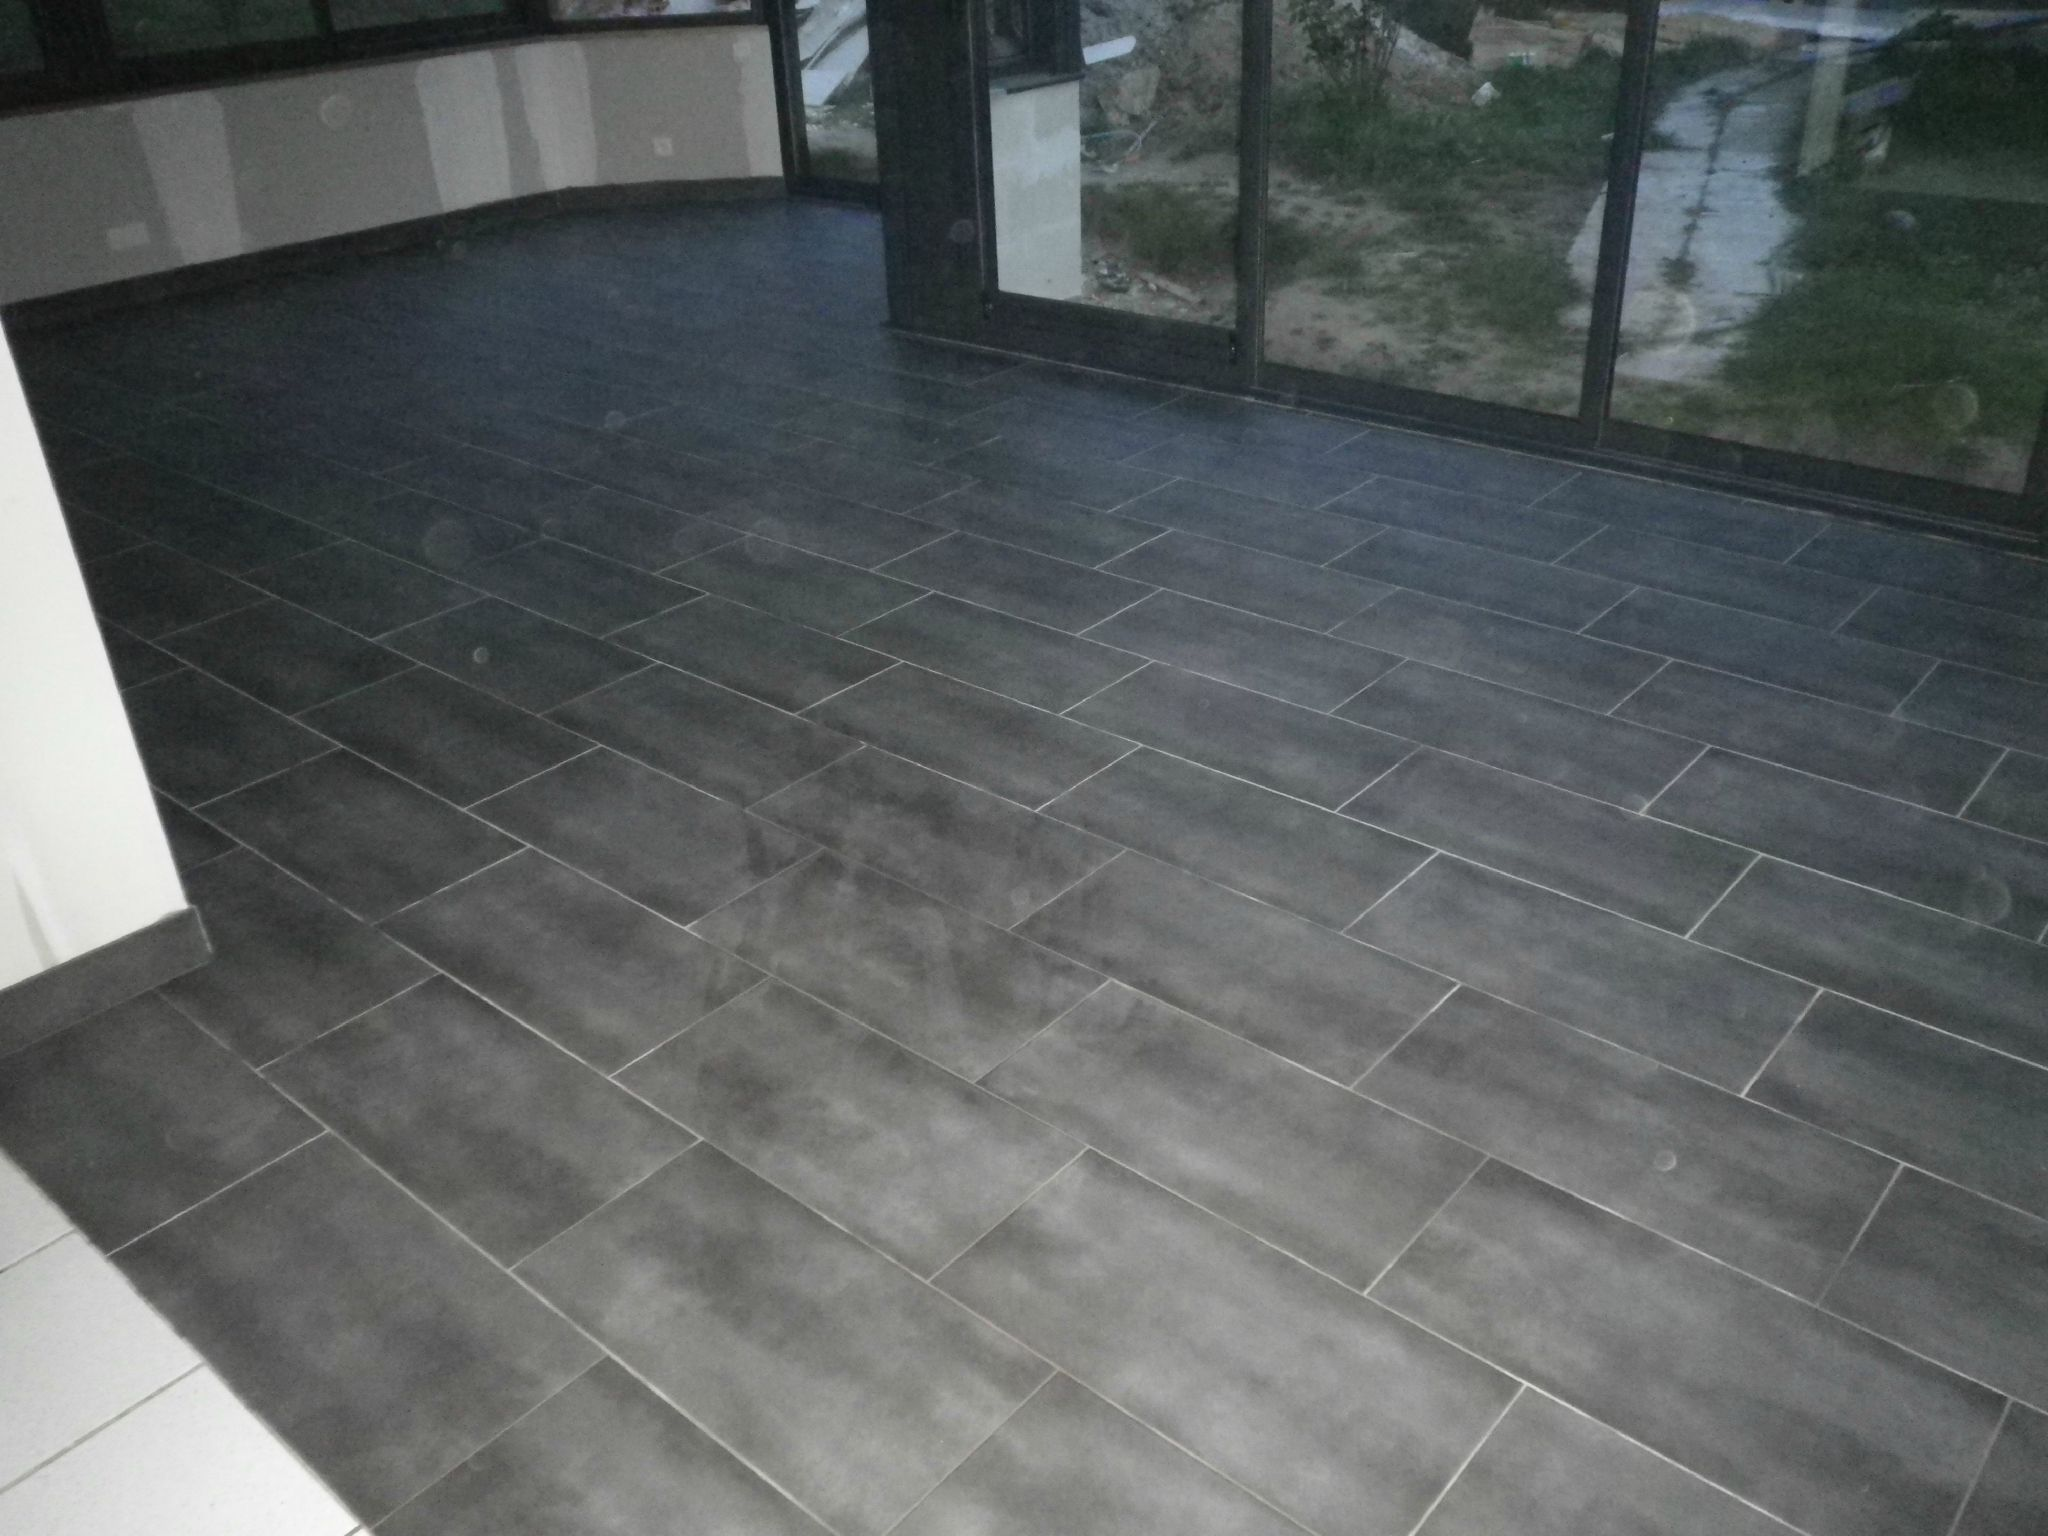 Comment poser du carrelage sur du carrelage affordable for Carrelage sans joint ni colle